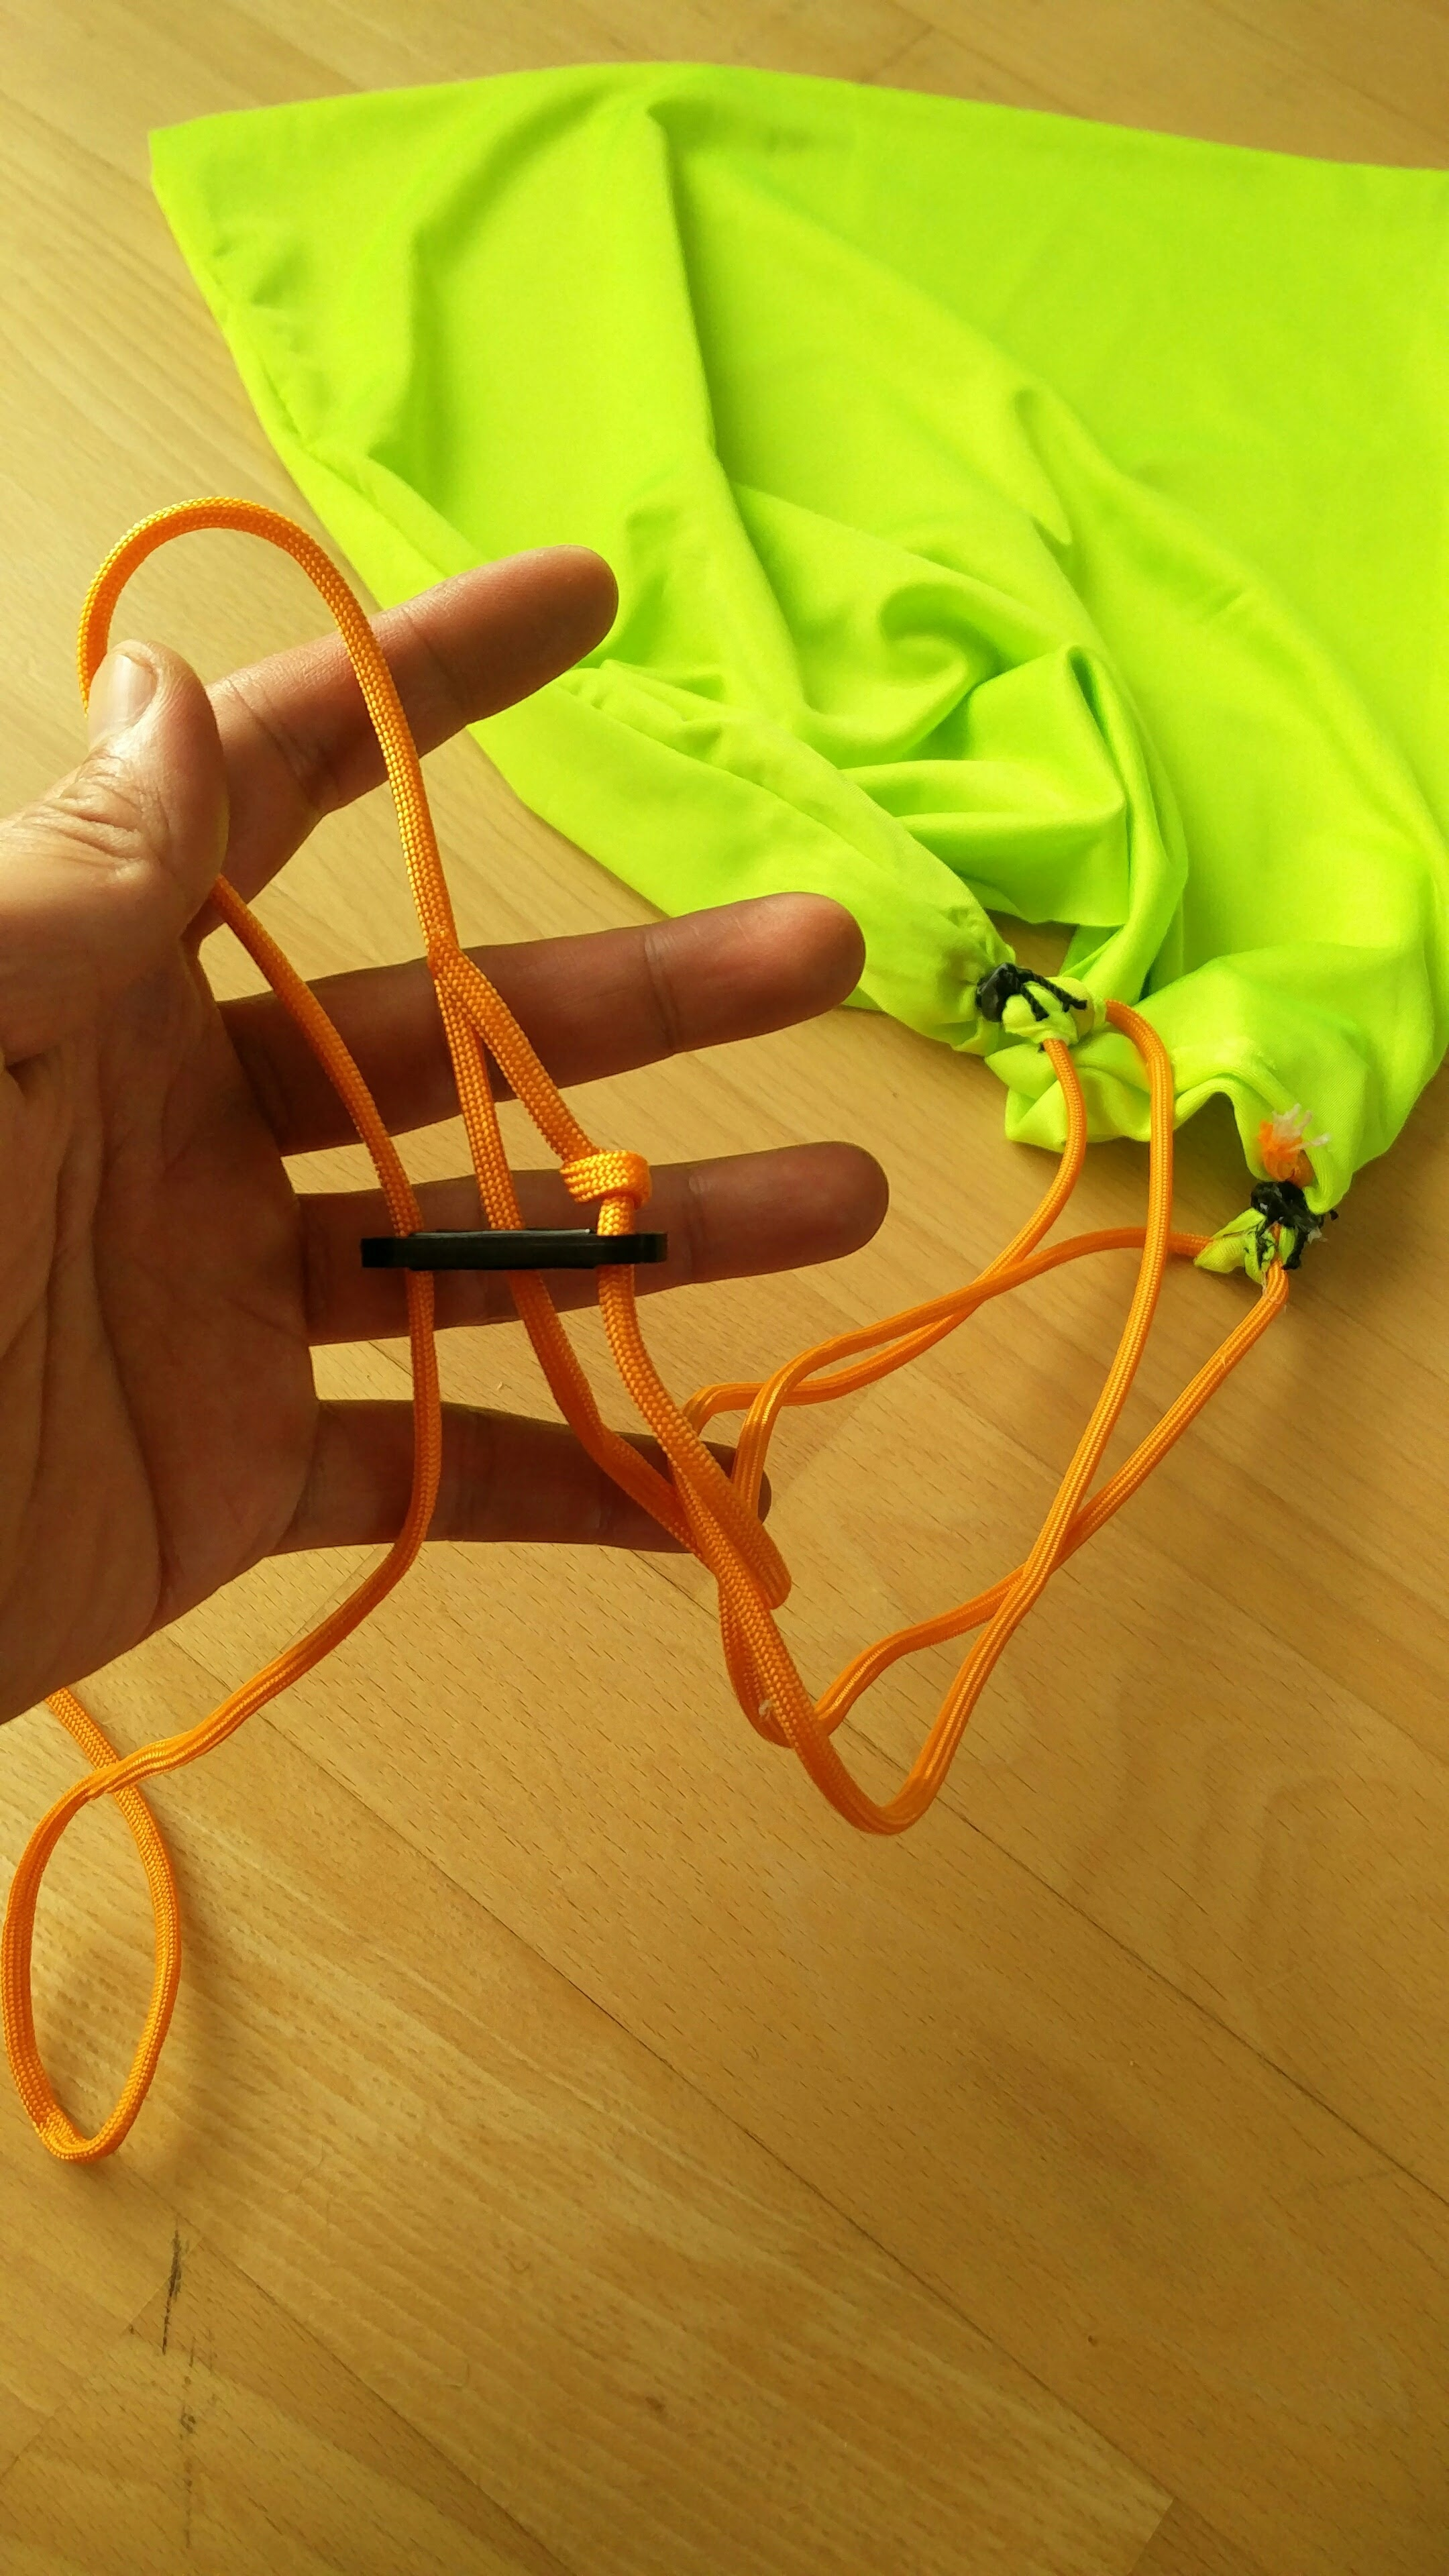 Picture of Attaching Adjustable Cords and Packing